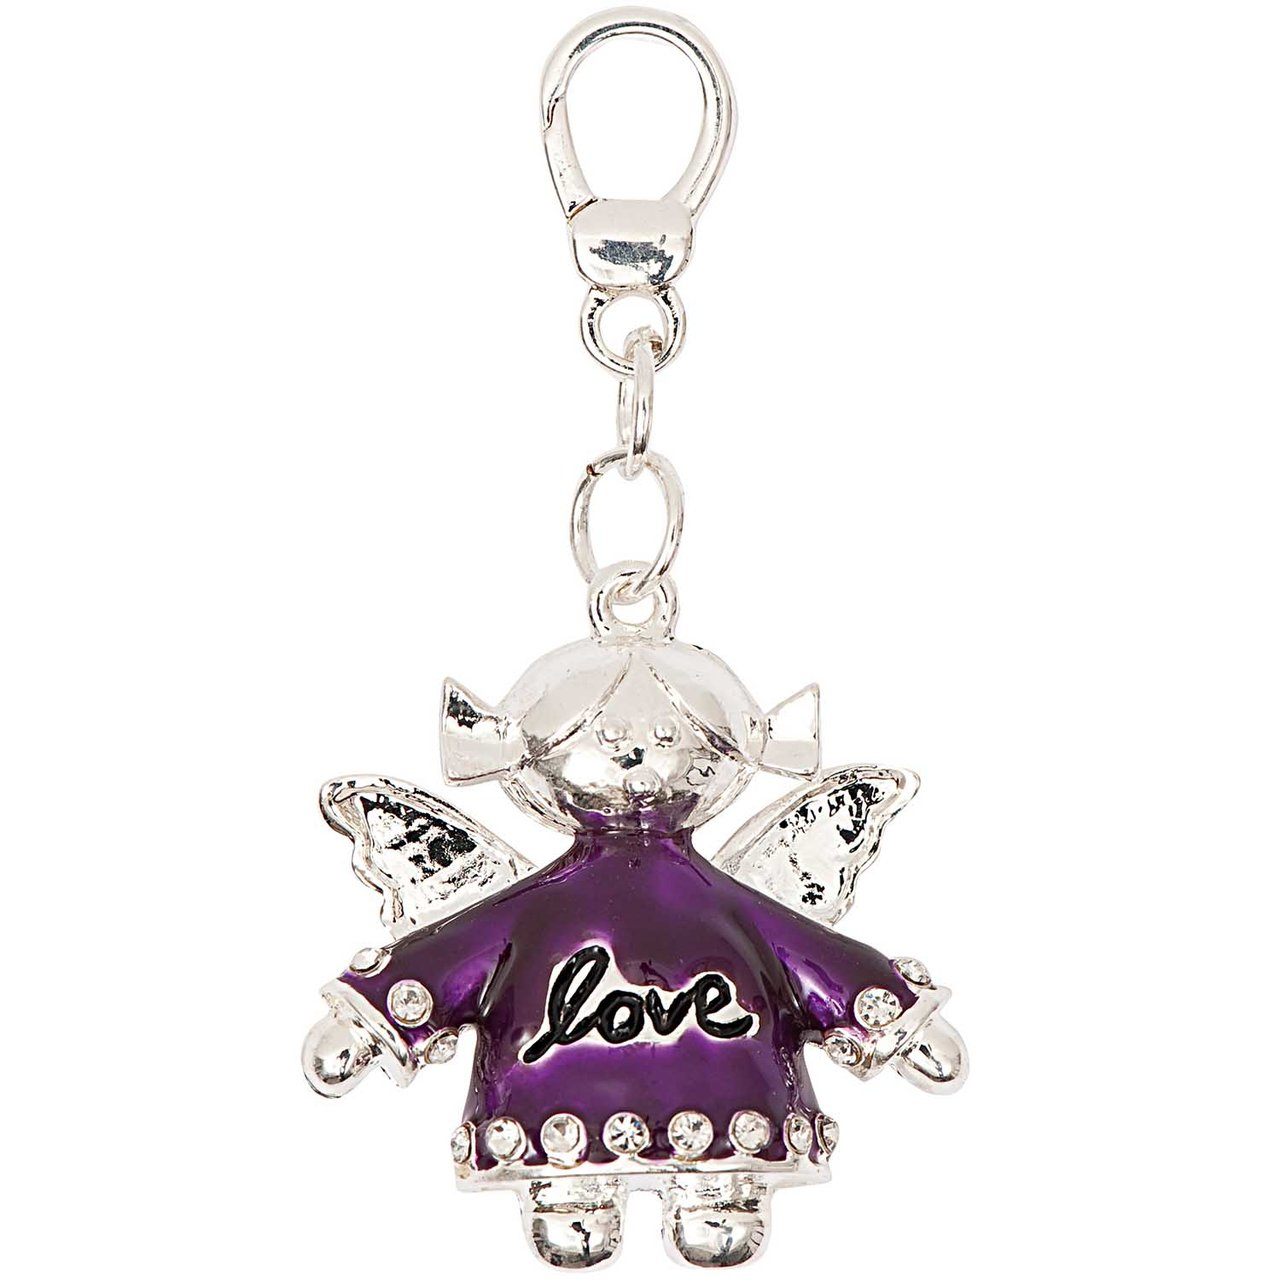 Jewellery Made by Me Big Charm Engel love 3,7x3,5cm